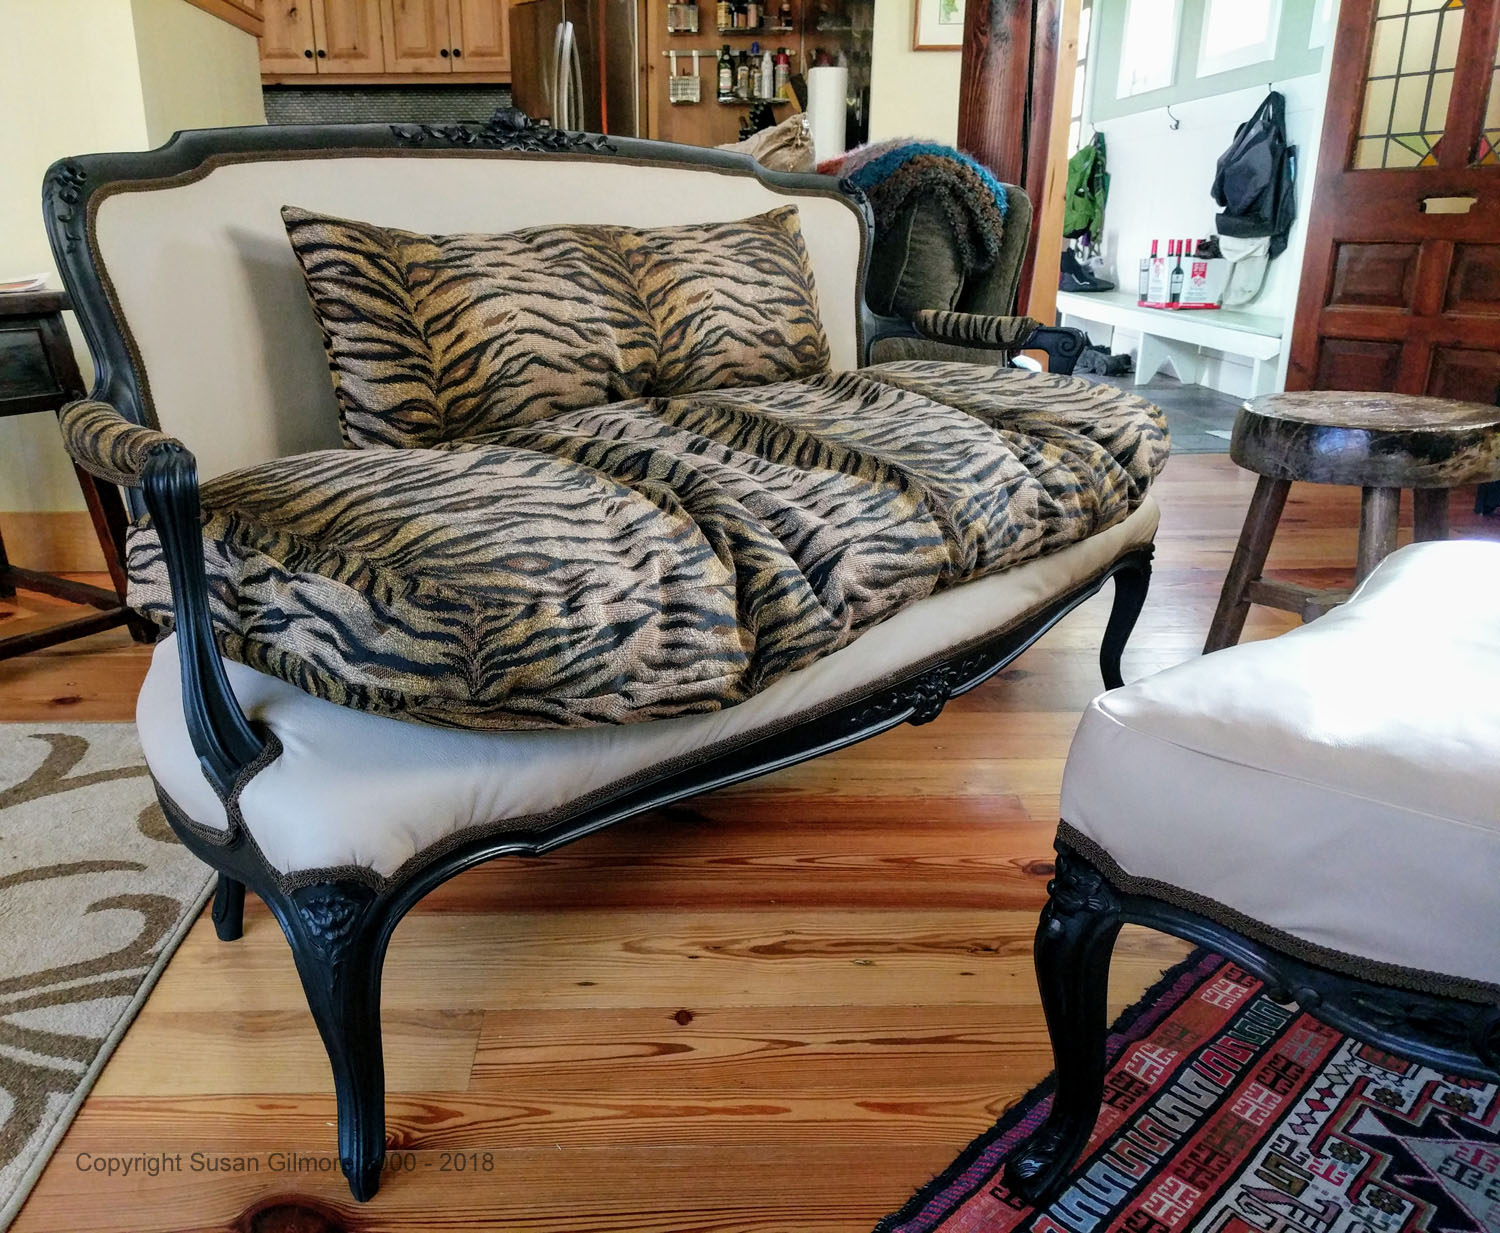 Upholstery and pillows by Susan Gilmore